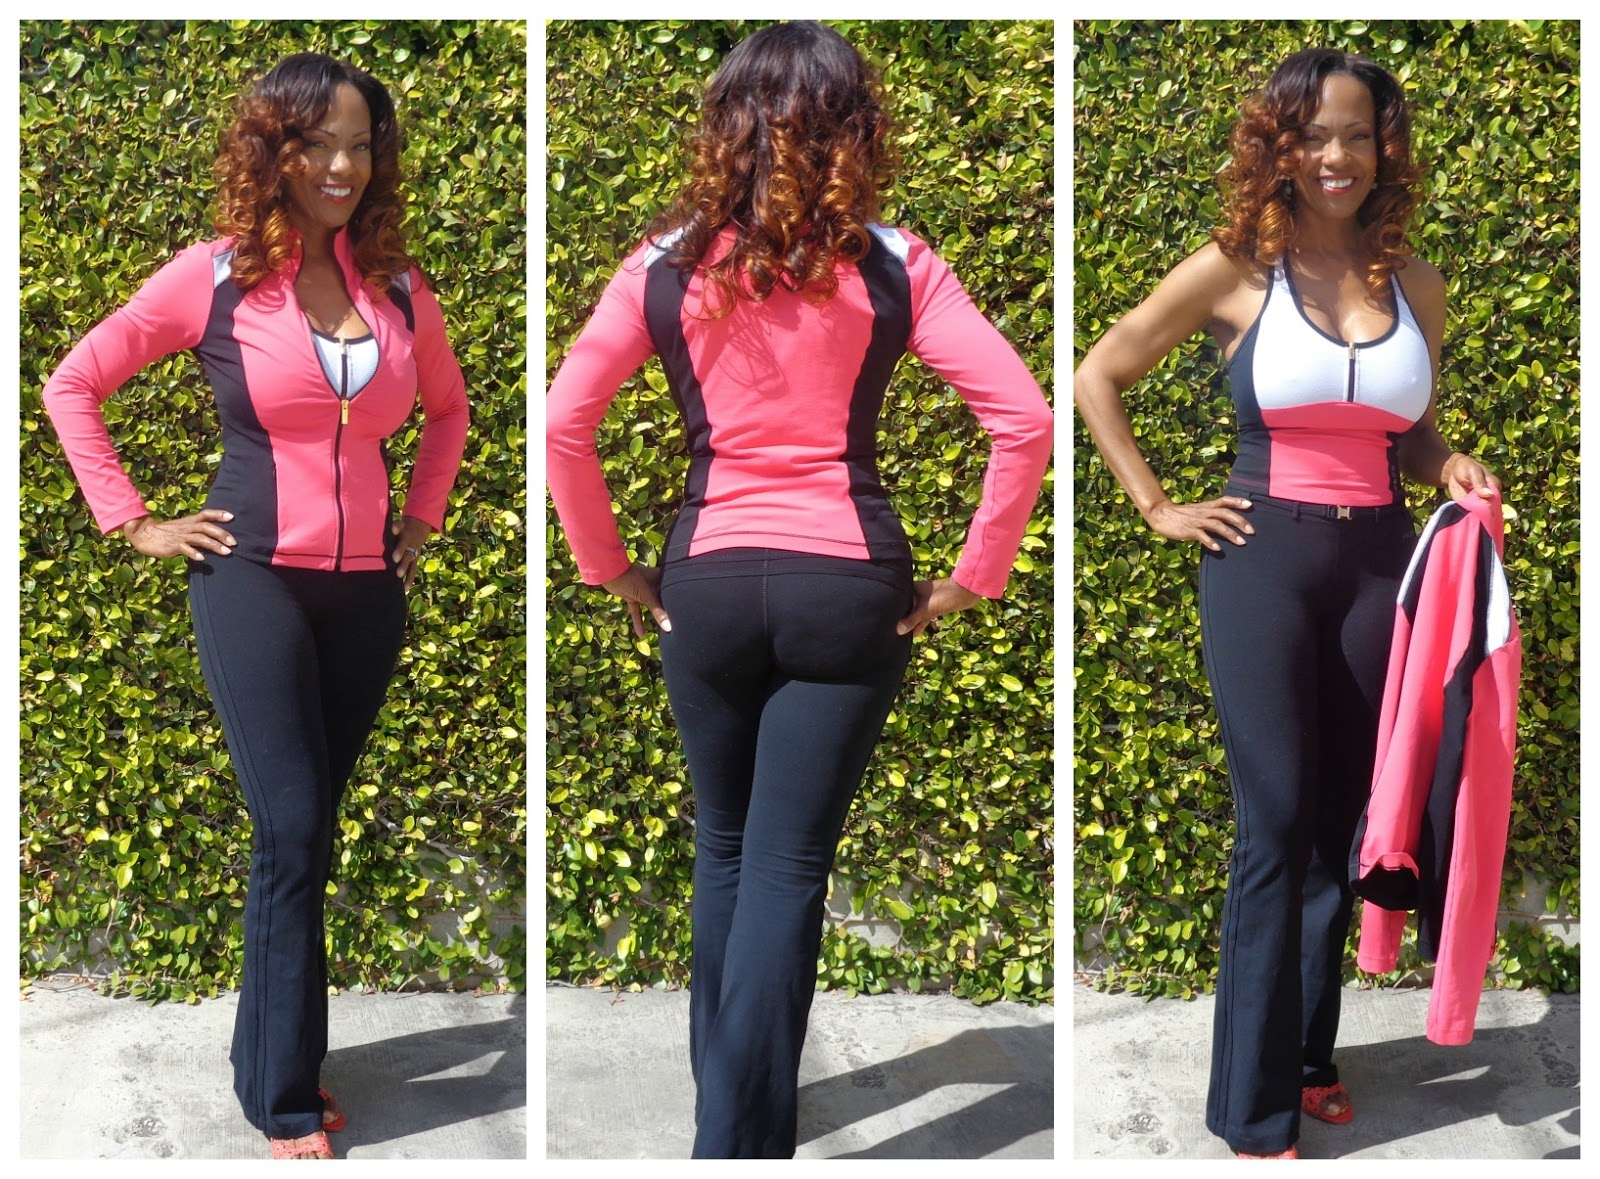 Jacket, Pants, Tank - BeBe Sports Fitness Wear